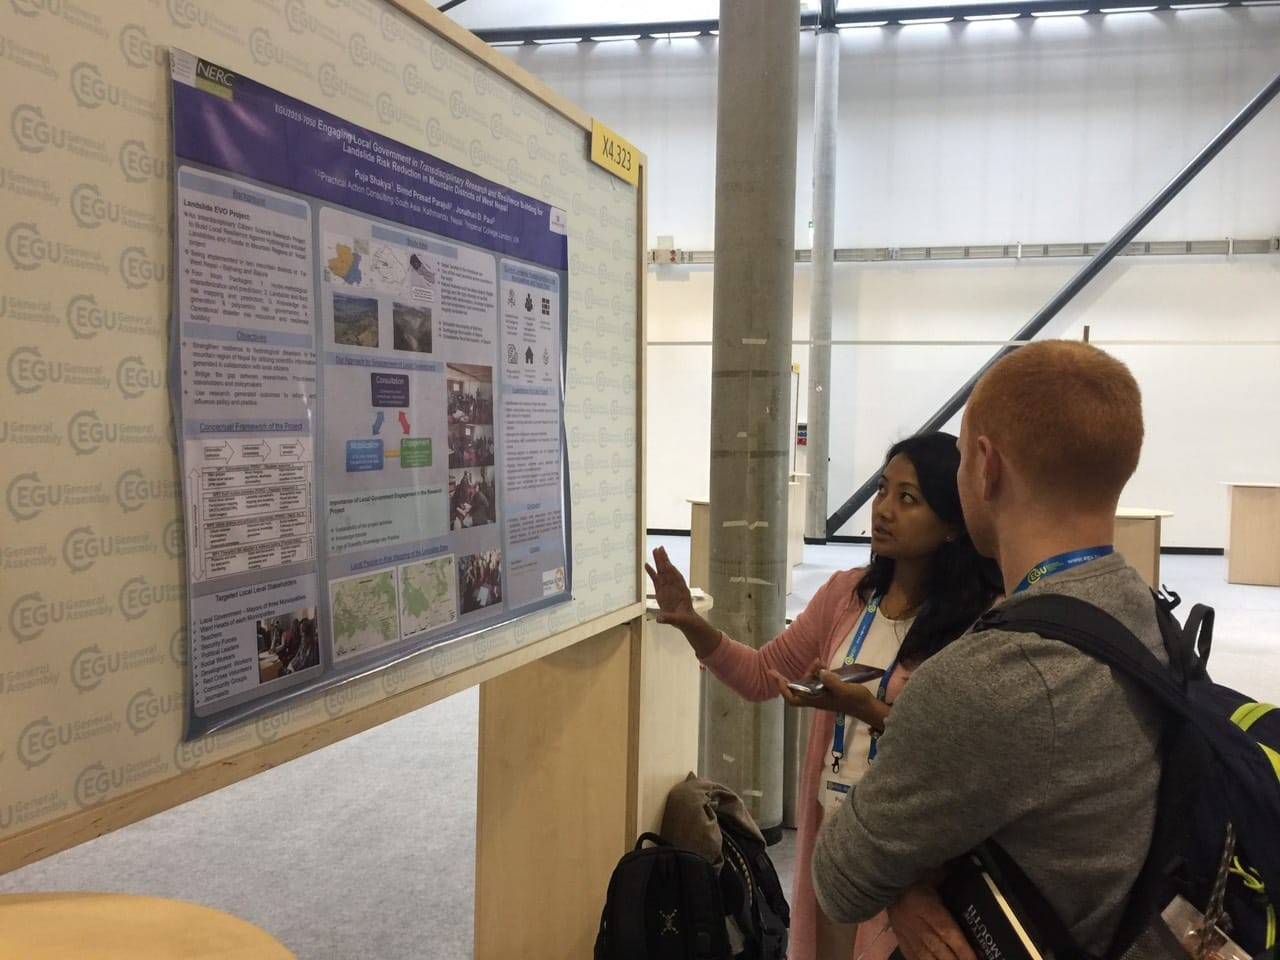 Puja Shakya, from Practical Action Consulting Nepal, presenting her poster on engaging local authorities in multi-disciplinary research